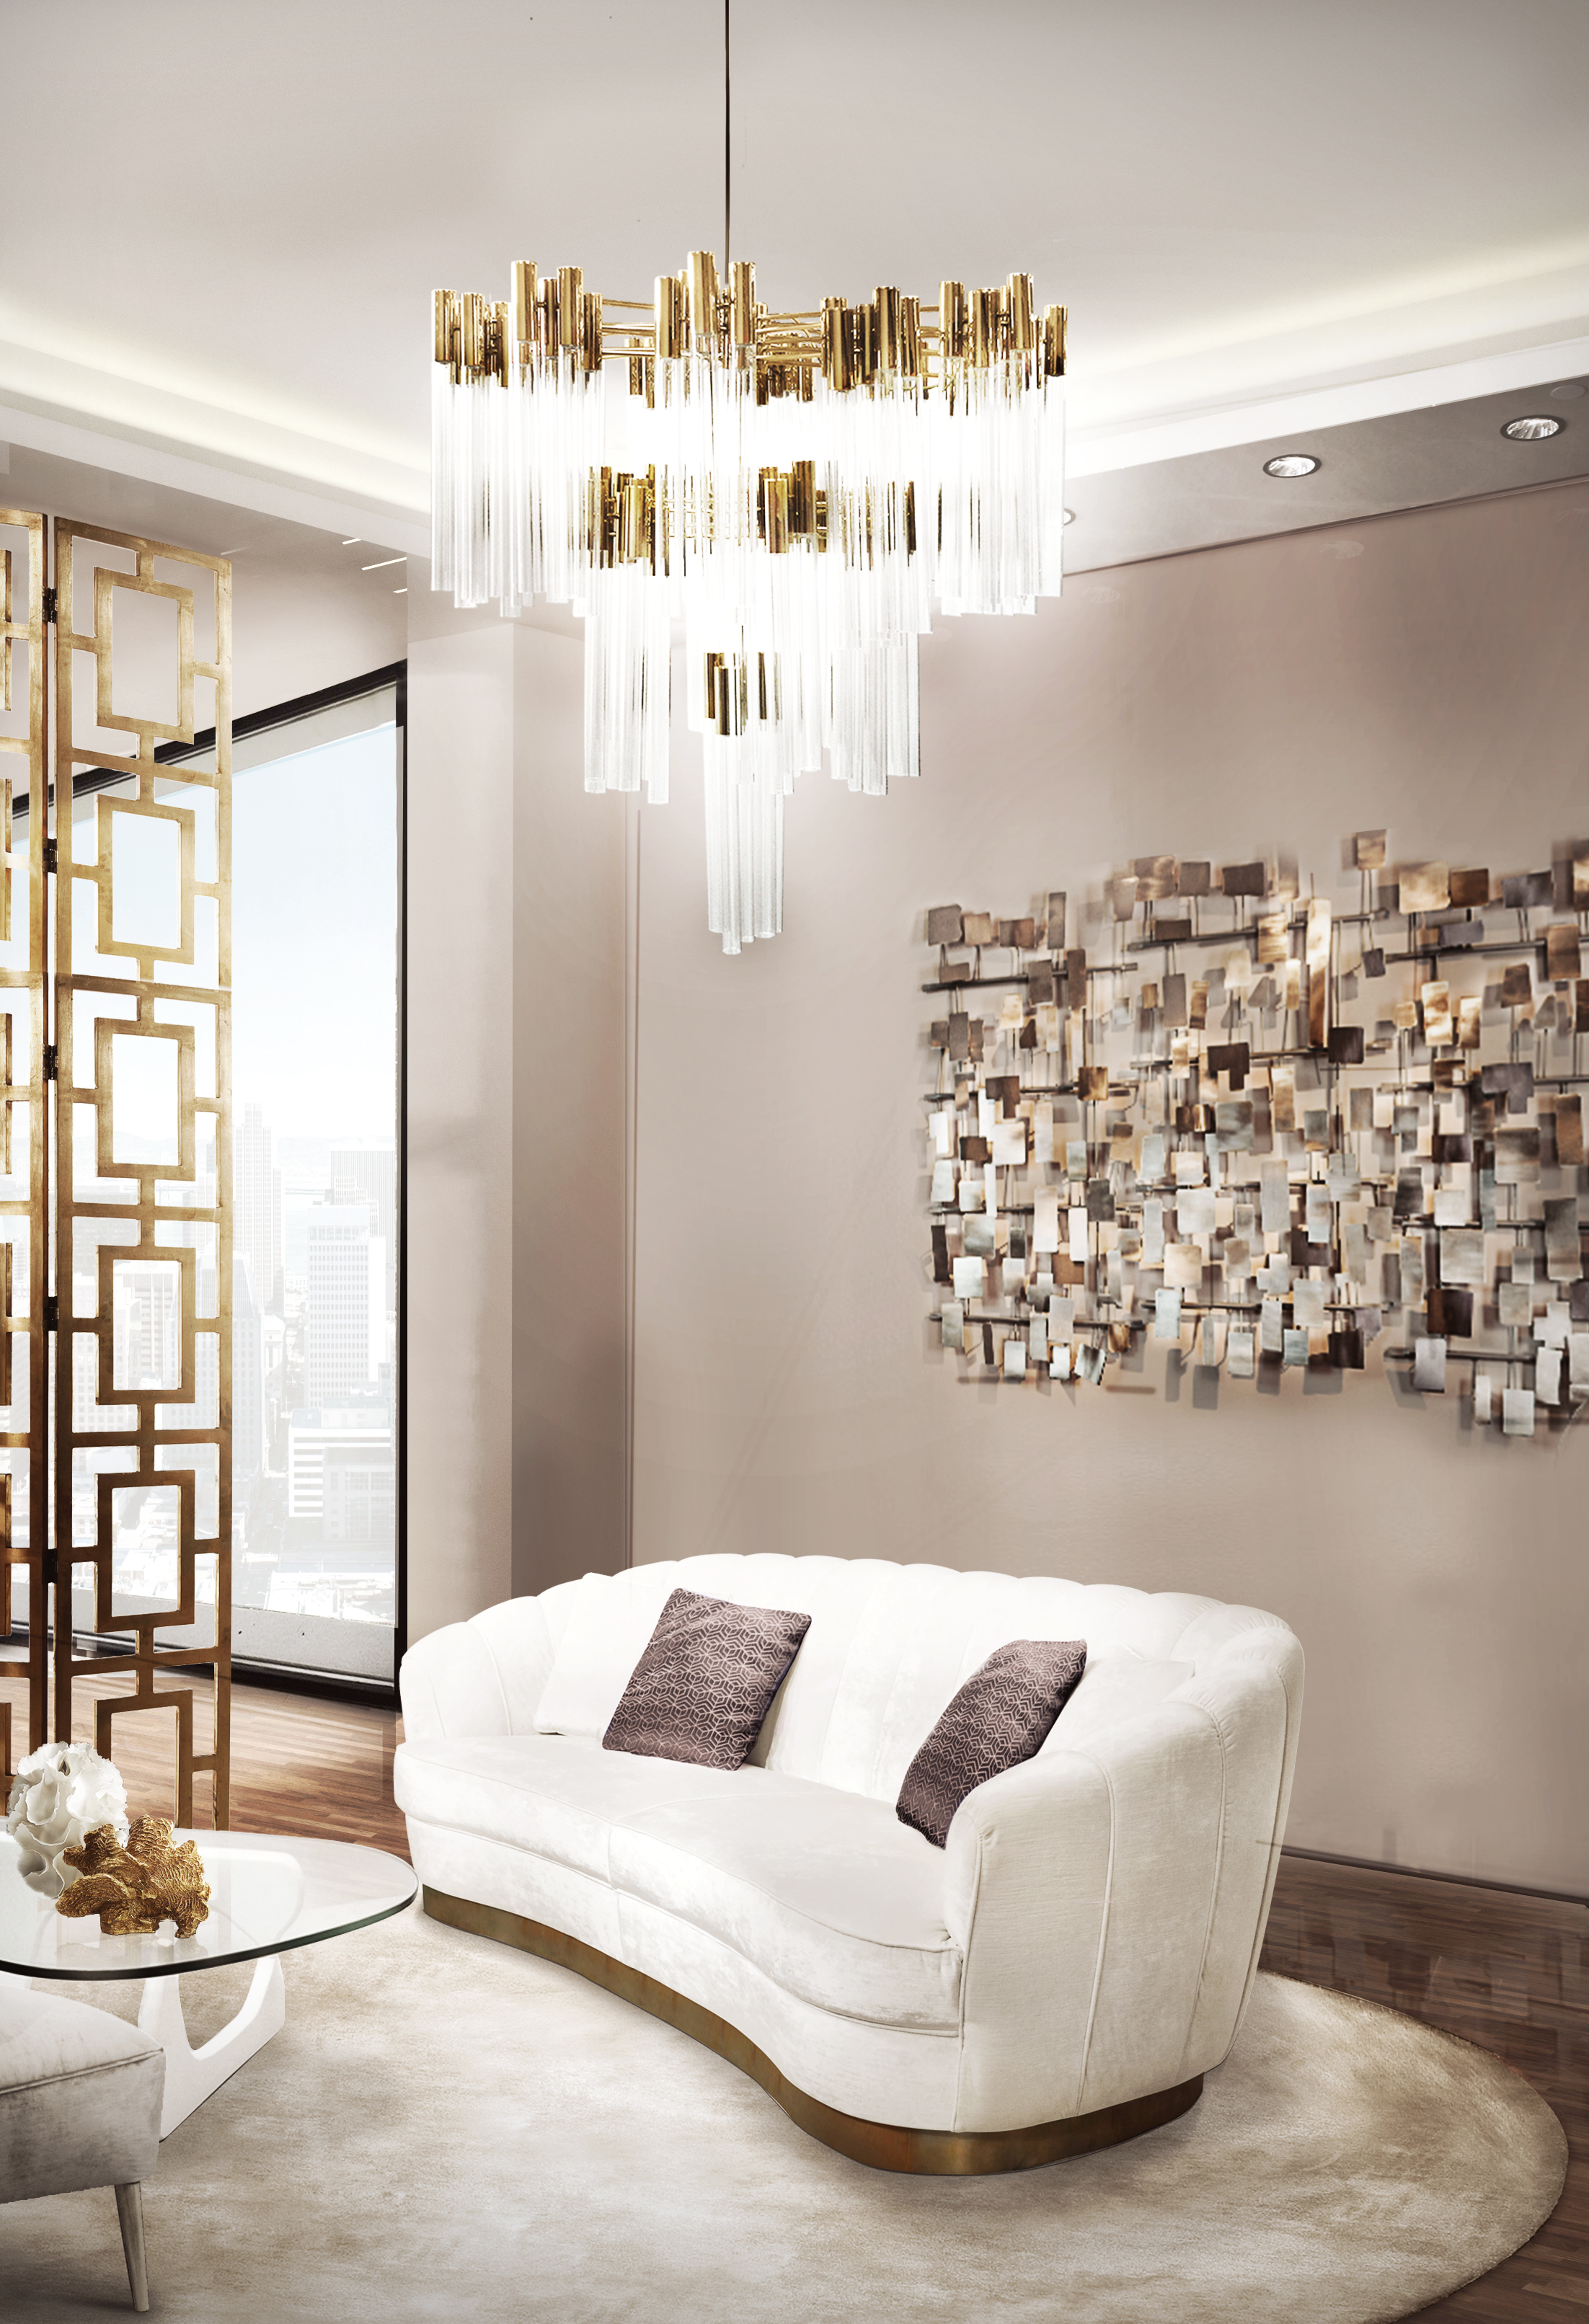 Living Room Design Ideas For a Luxurious Interior Design Project living room ideas Living Room Ideas For a Luxurious Interior Design Project Living Room Ideas For a Luxurious Interior Design Project 31